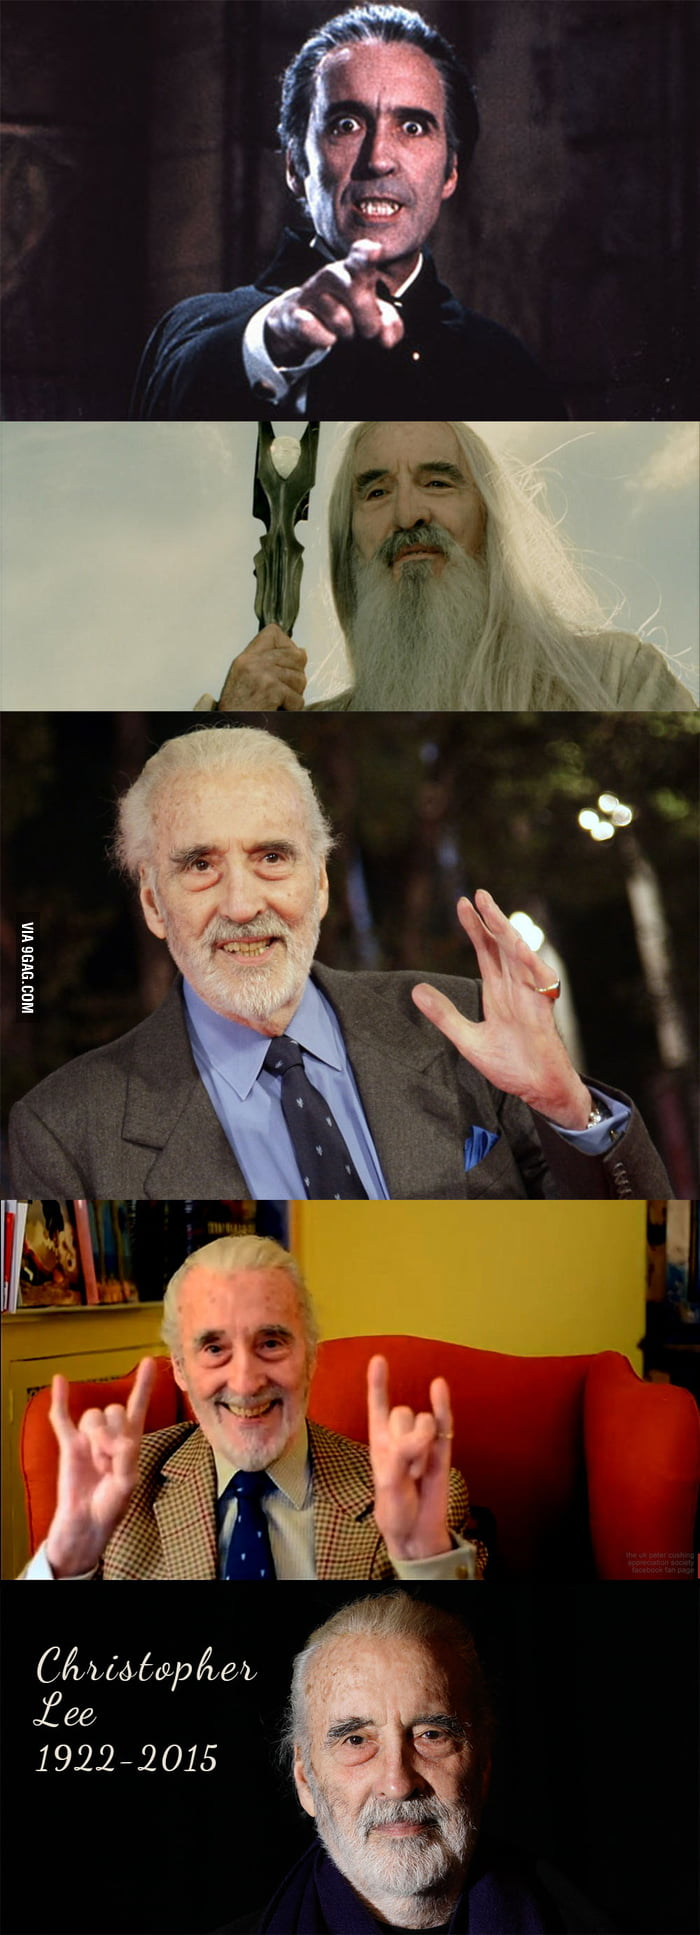 93 years of epicness. Rest in Peace. Sir Christopher Lee.